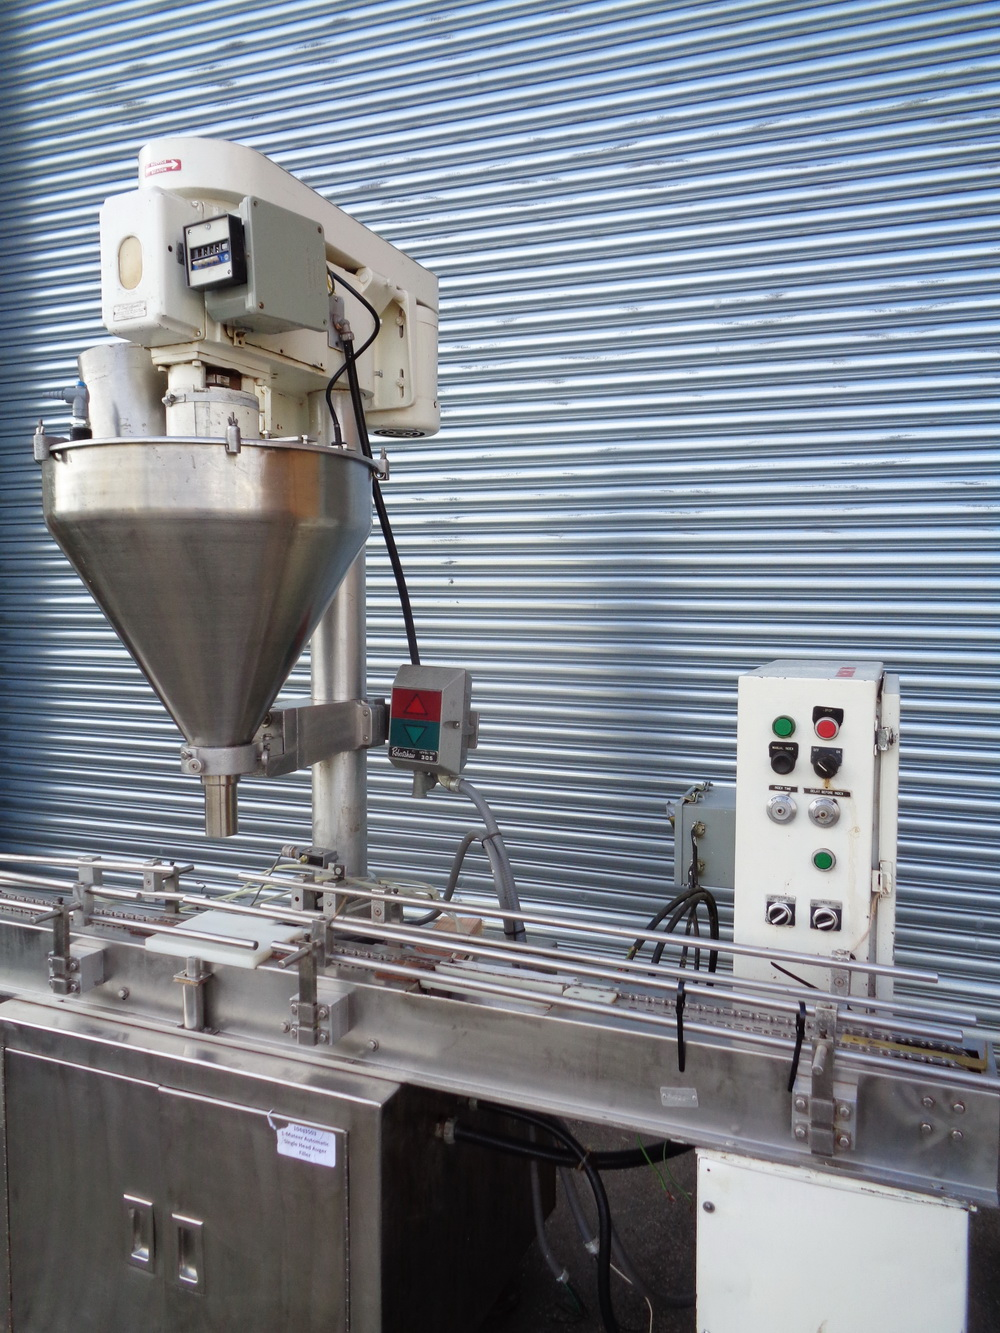 Mateer Automatic Single Head Auger Filler, Model 33-A, S/N A-467 - Image 3 of 10